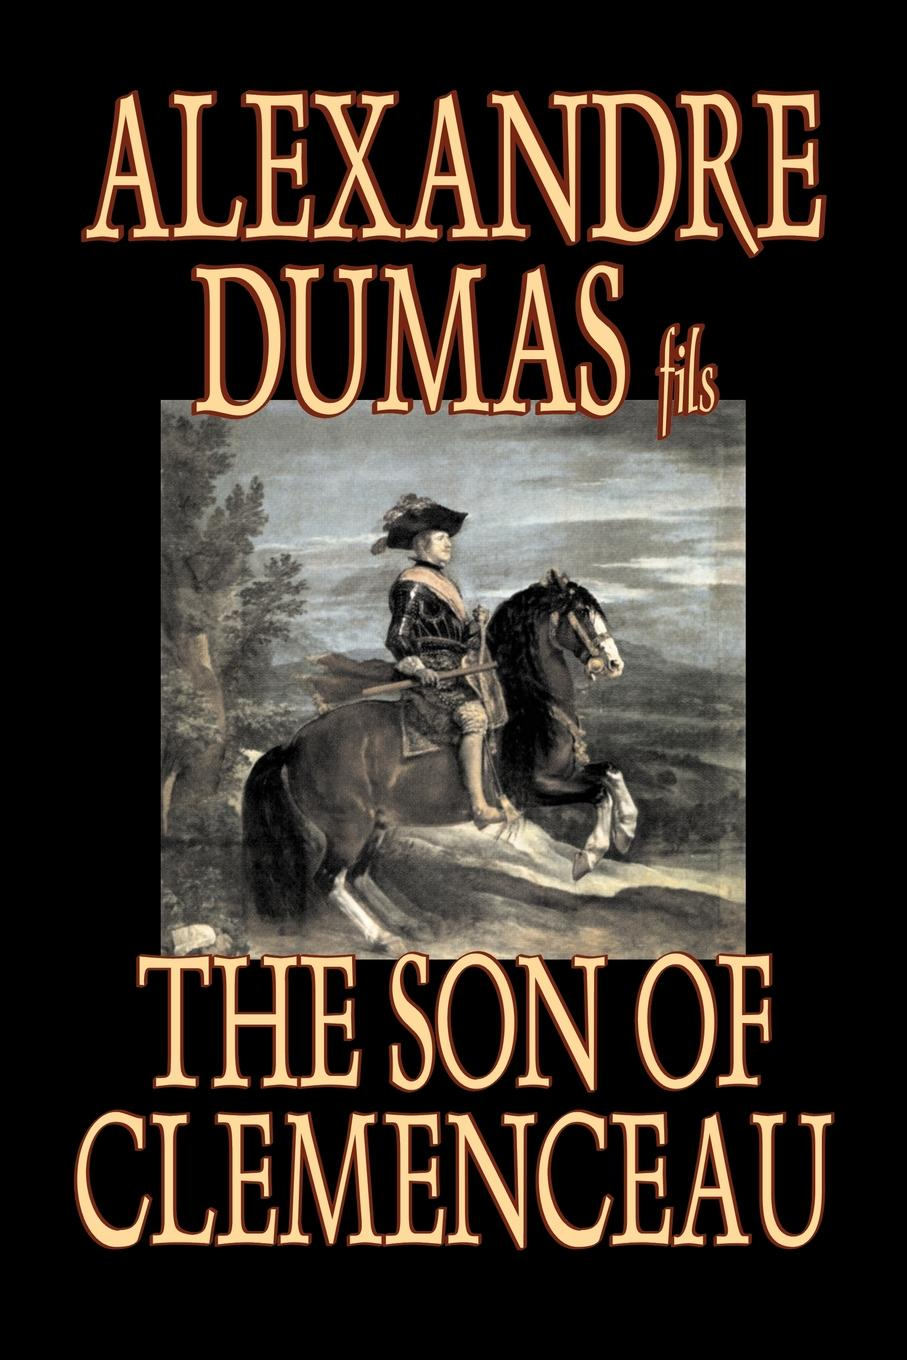 Alexandre Dumas fils The Son of Clemenceau by Alexandre Dumas, Fiction, Literary alexandre dumas the page of the duke of savoy vol ii